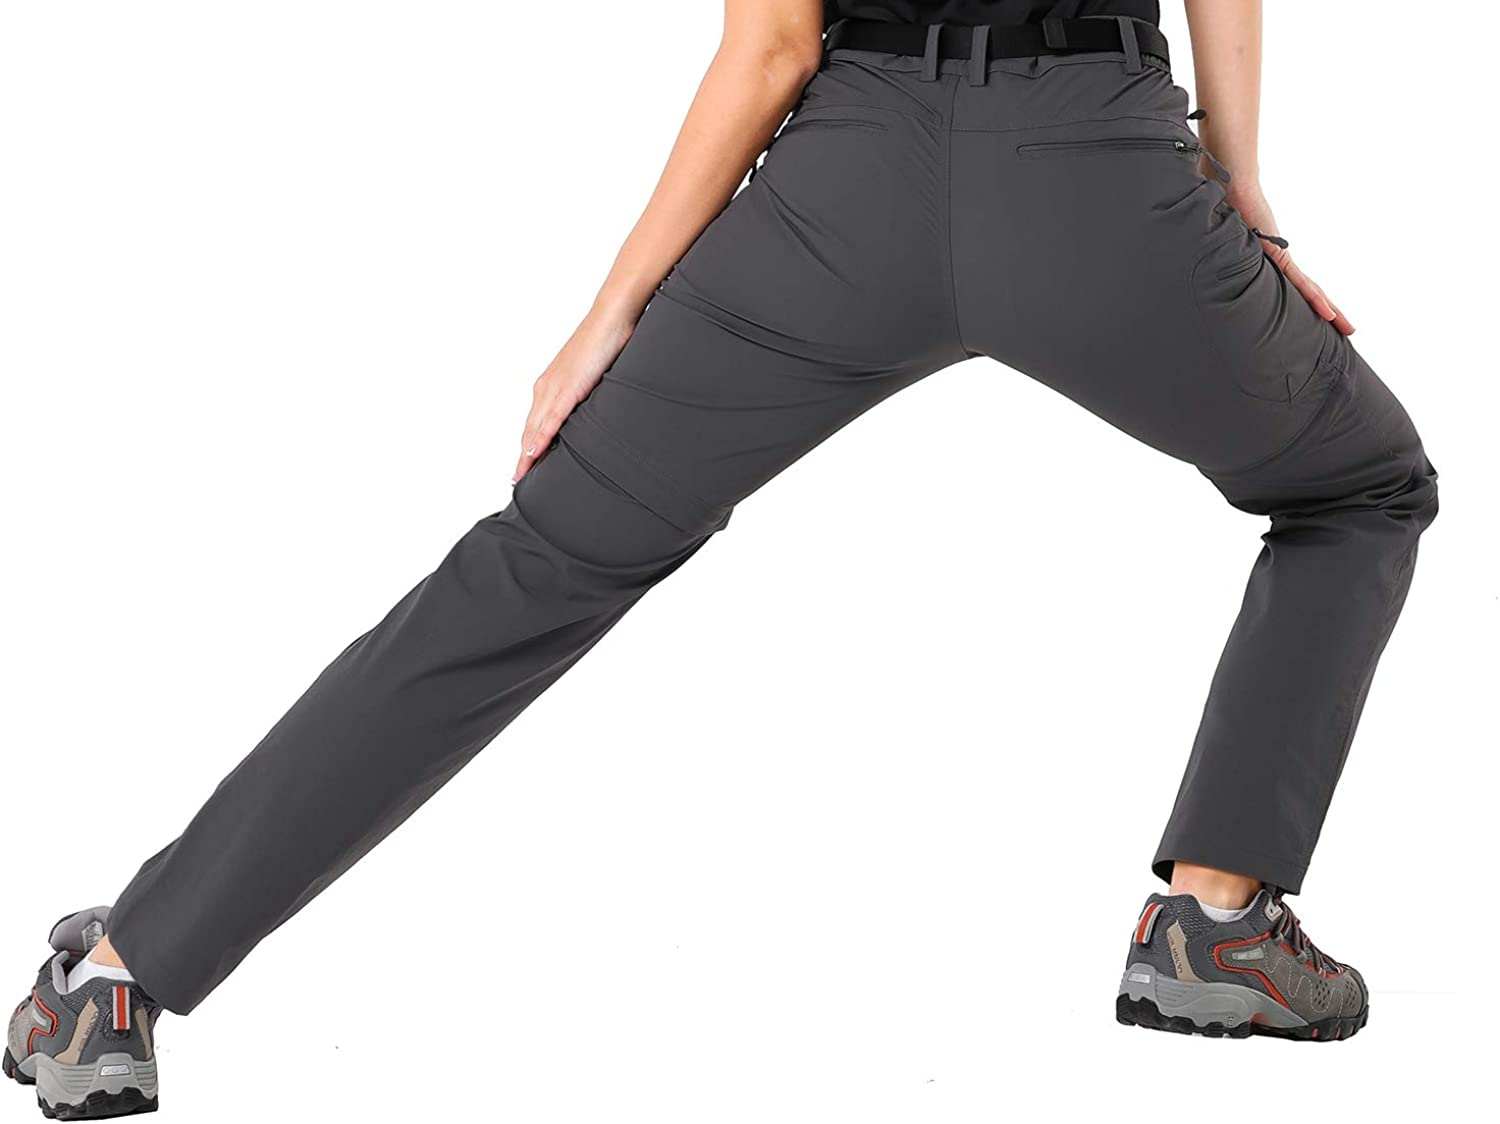 Water Resistant MIER Womens Quick Dry Convertible Cargo Pants Lightweight Stretchy Hiking Travel Pants 5 Zip Pockets